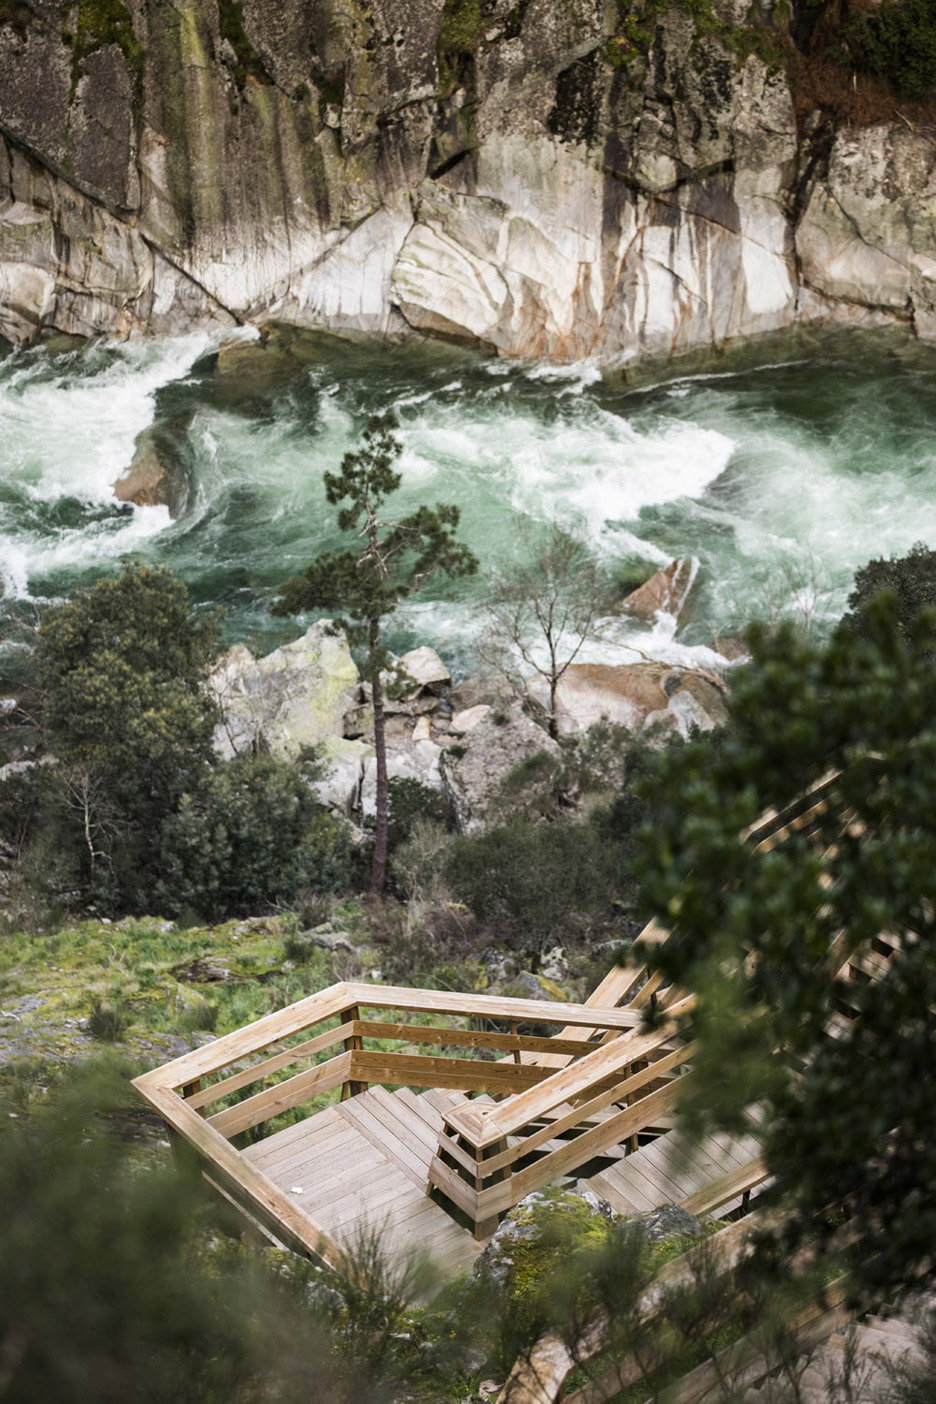 Paiva Walkways by Trimetrica, photographed by Nelson Garrido